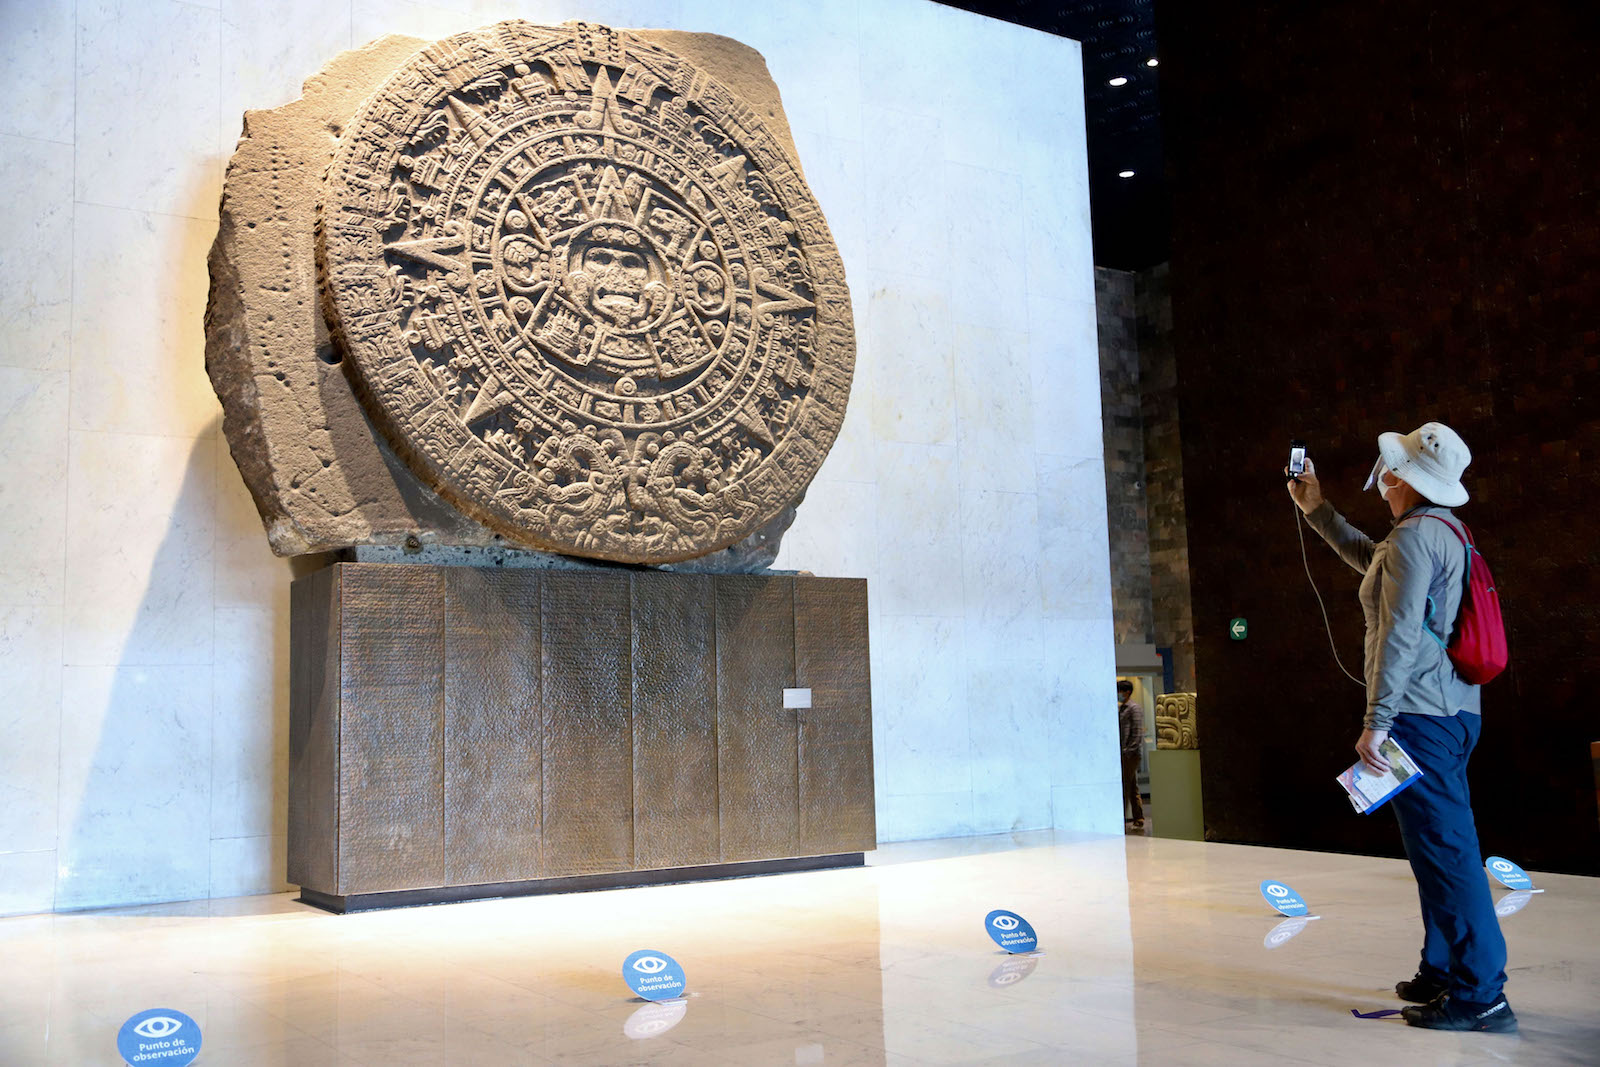 An International Cultural Organization Says Mexico's Museum Leaders Are Afraid to Speak the Truth About Their Dire Financial Straits